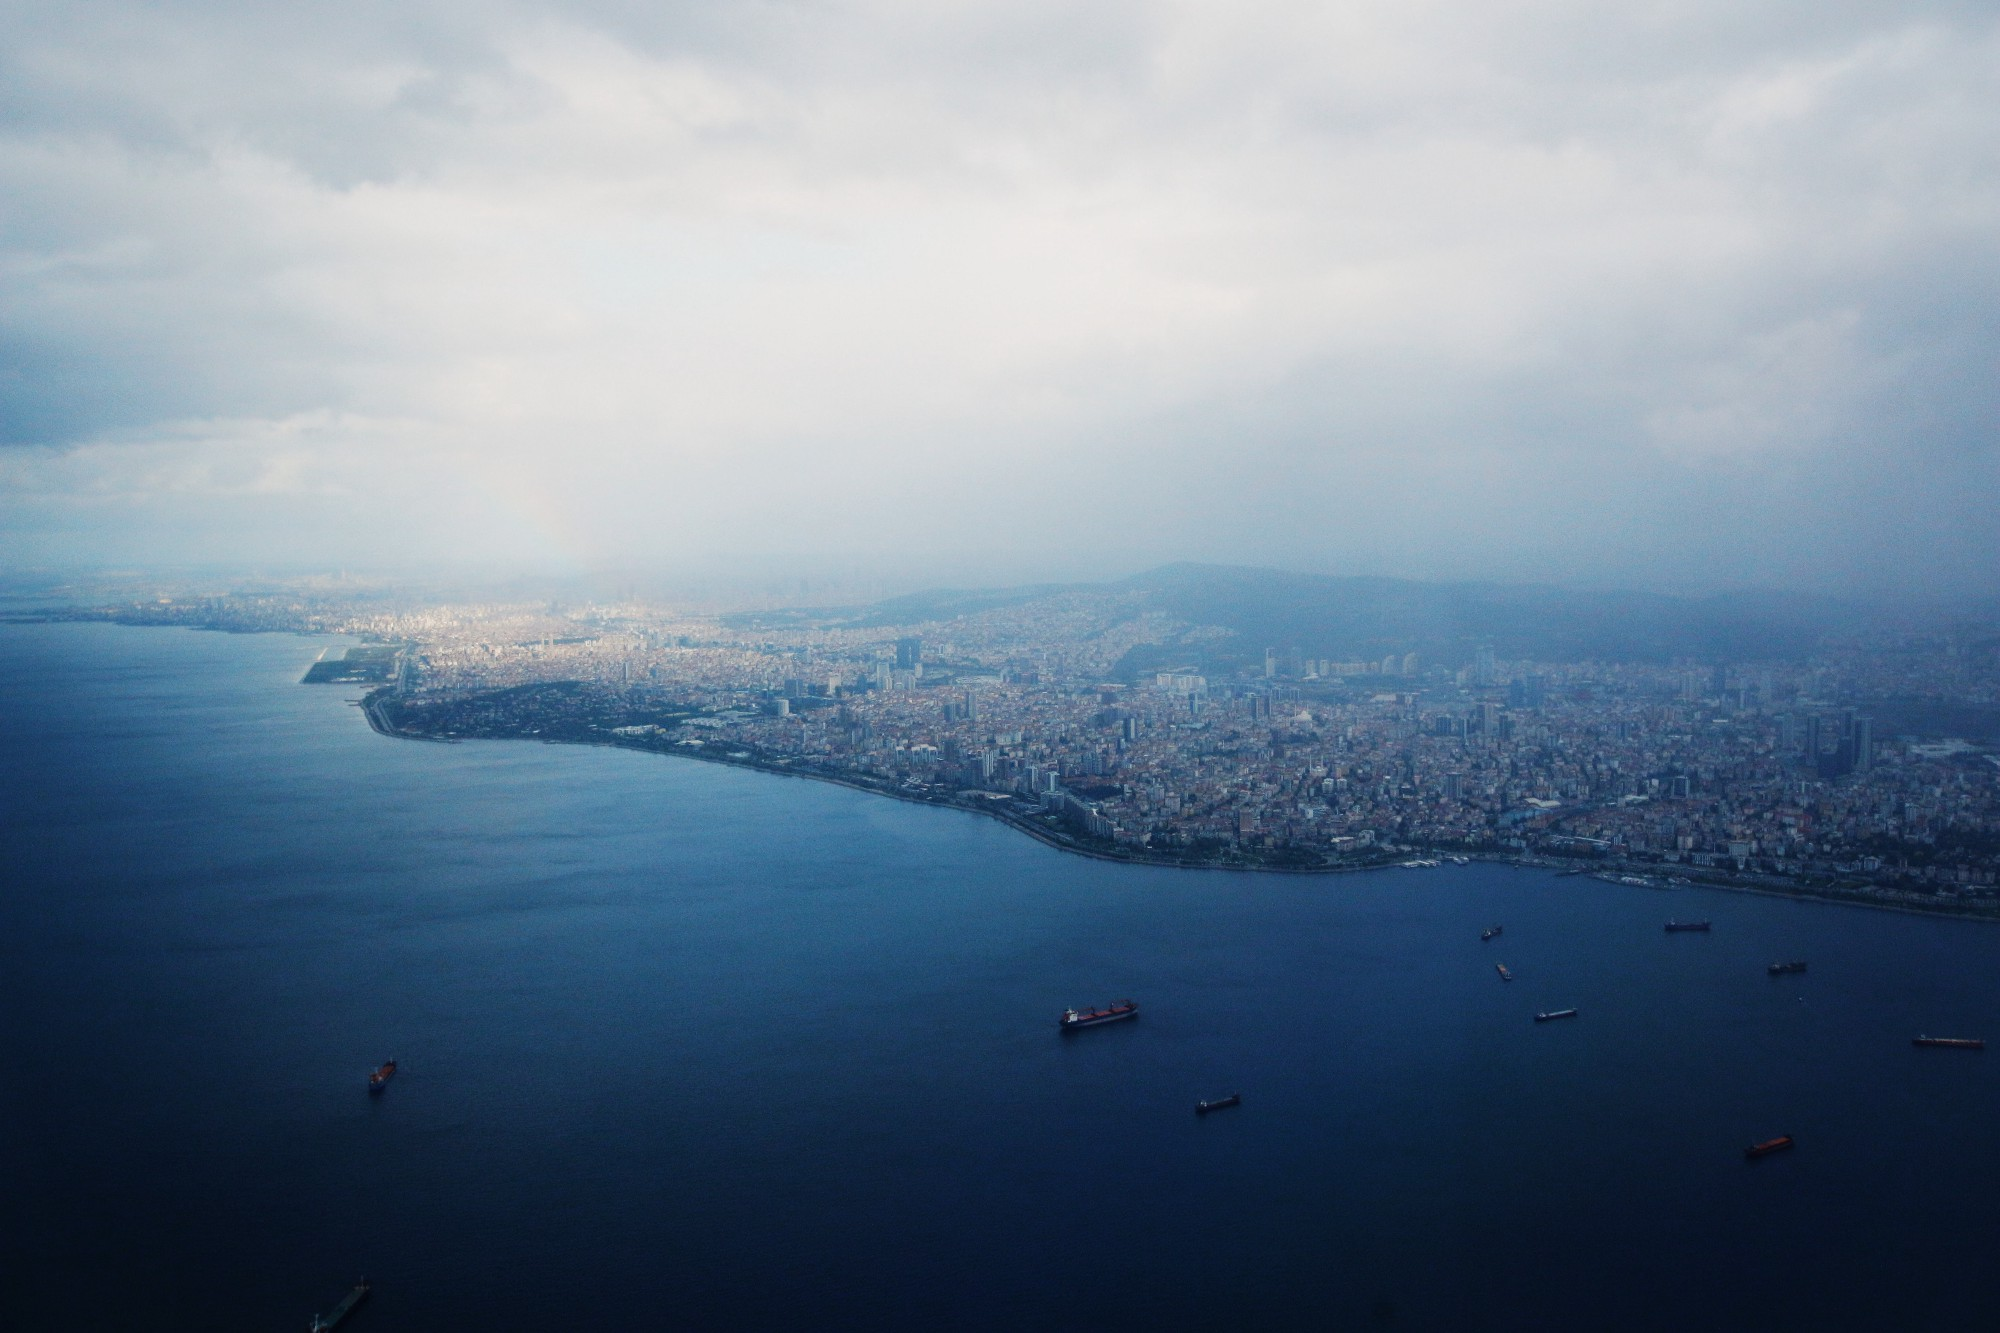 An aerial overview of the İstanbul shoreline.